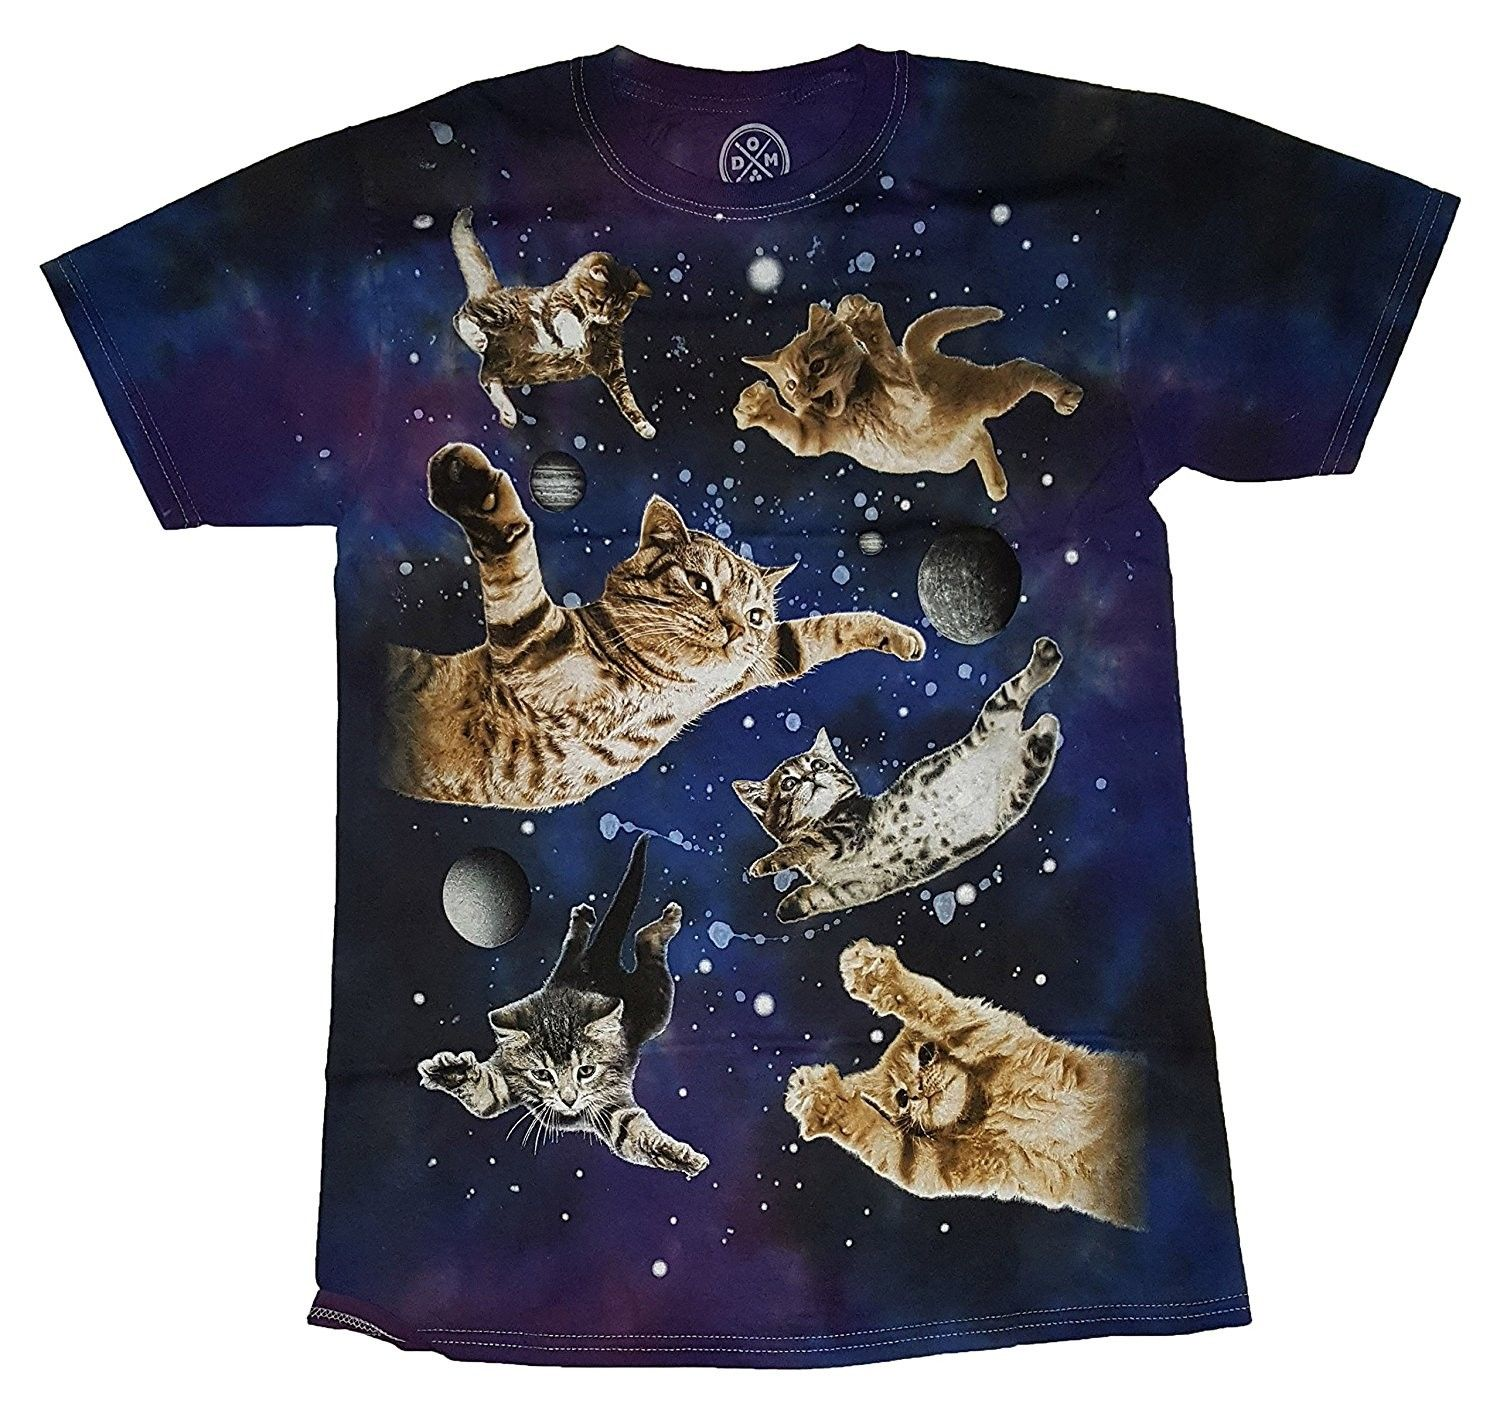 Kitty Cats In Space Galaxy Graphic T Shirt Cp12nfdkn31 Graphic Tshirt Tshirt Designs Cat Shirts